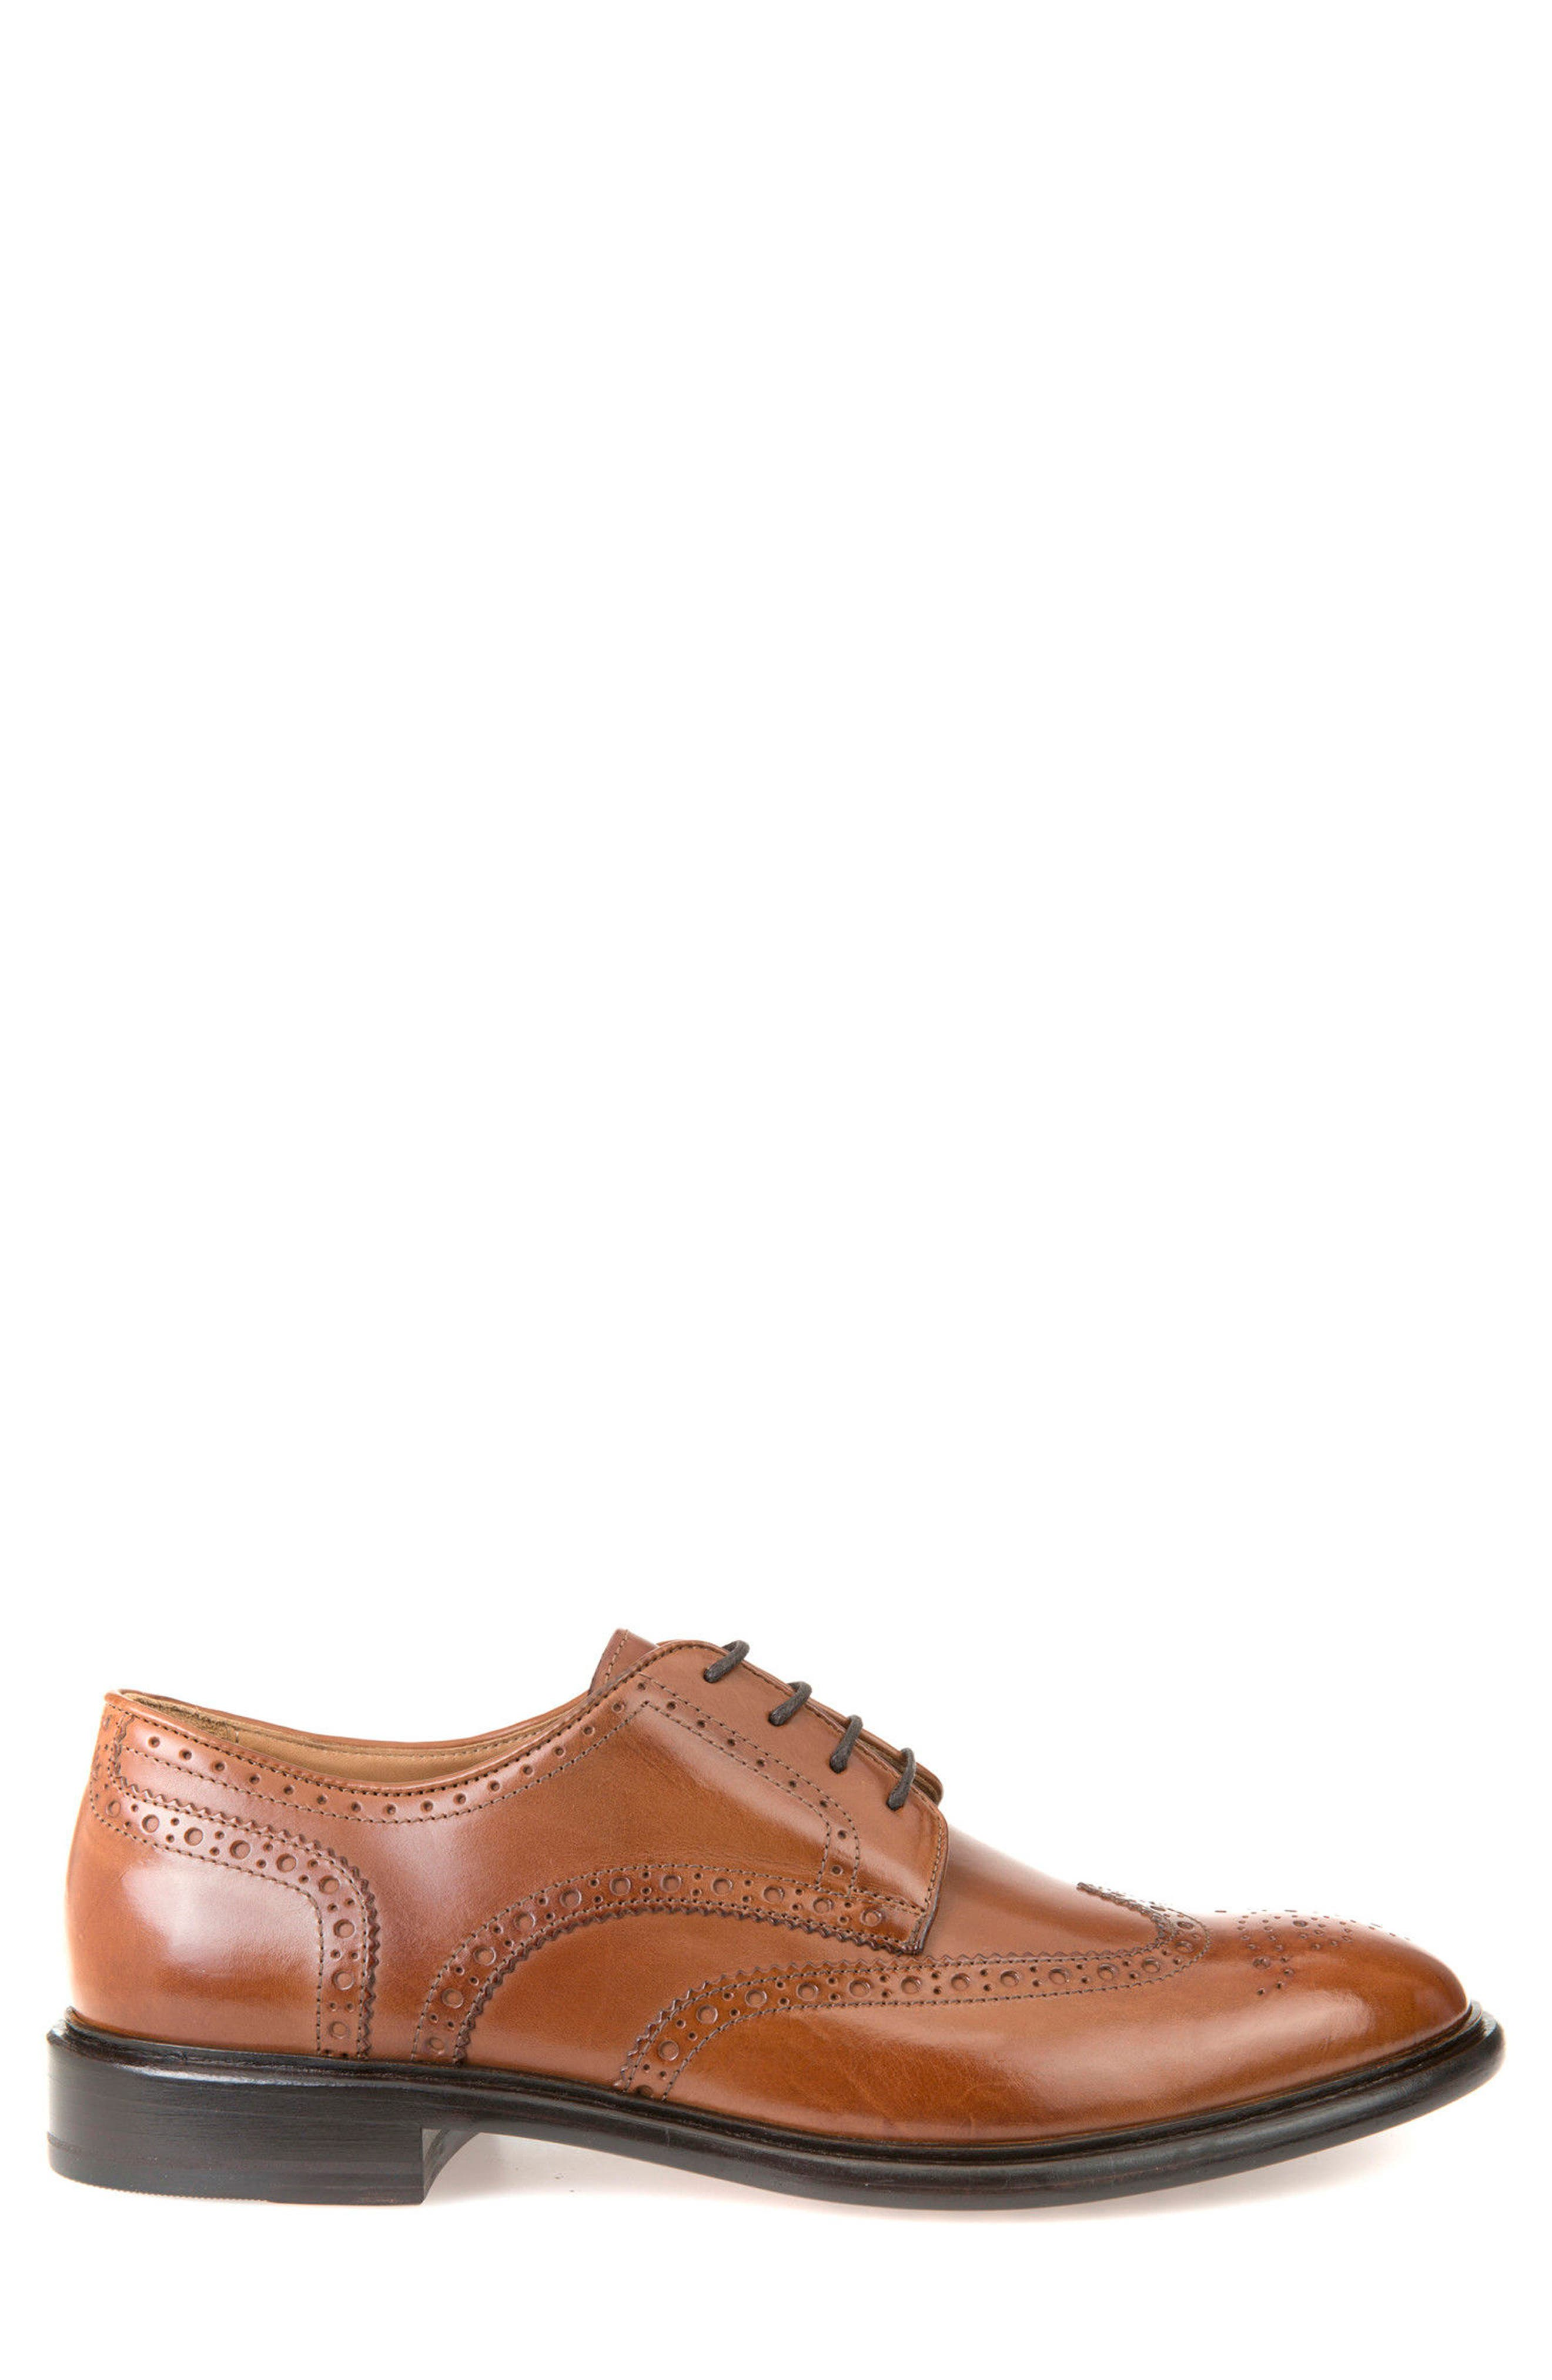 Guildford 4 Wingtip,                             Alternate thumbnail 3, color,                             204